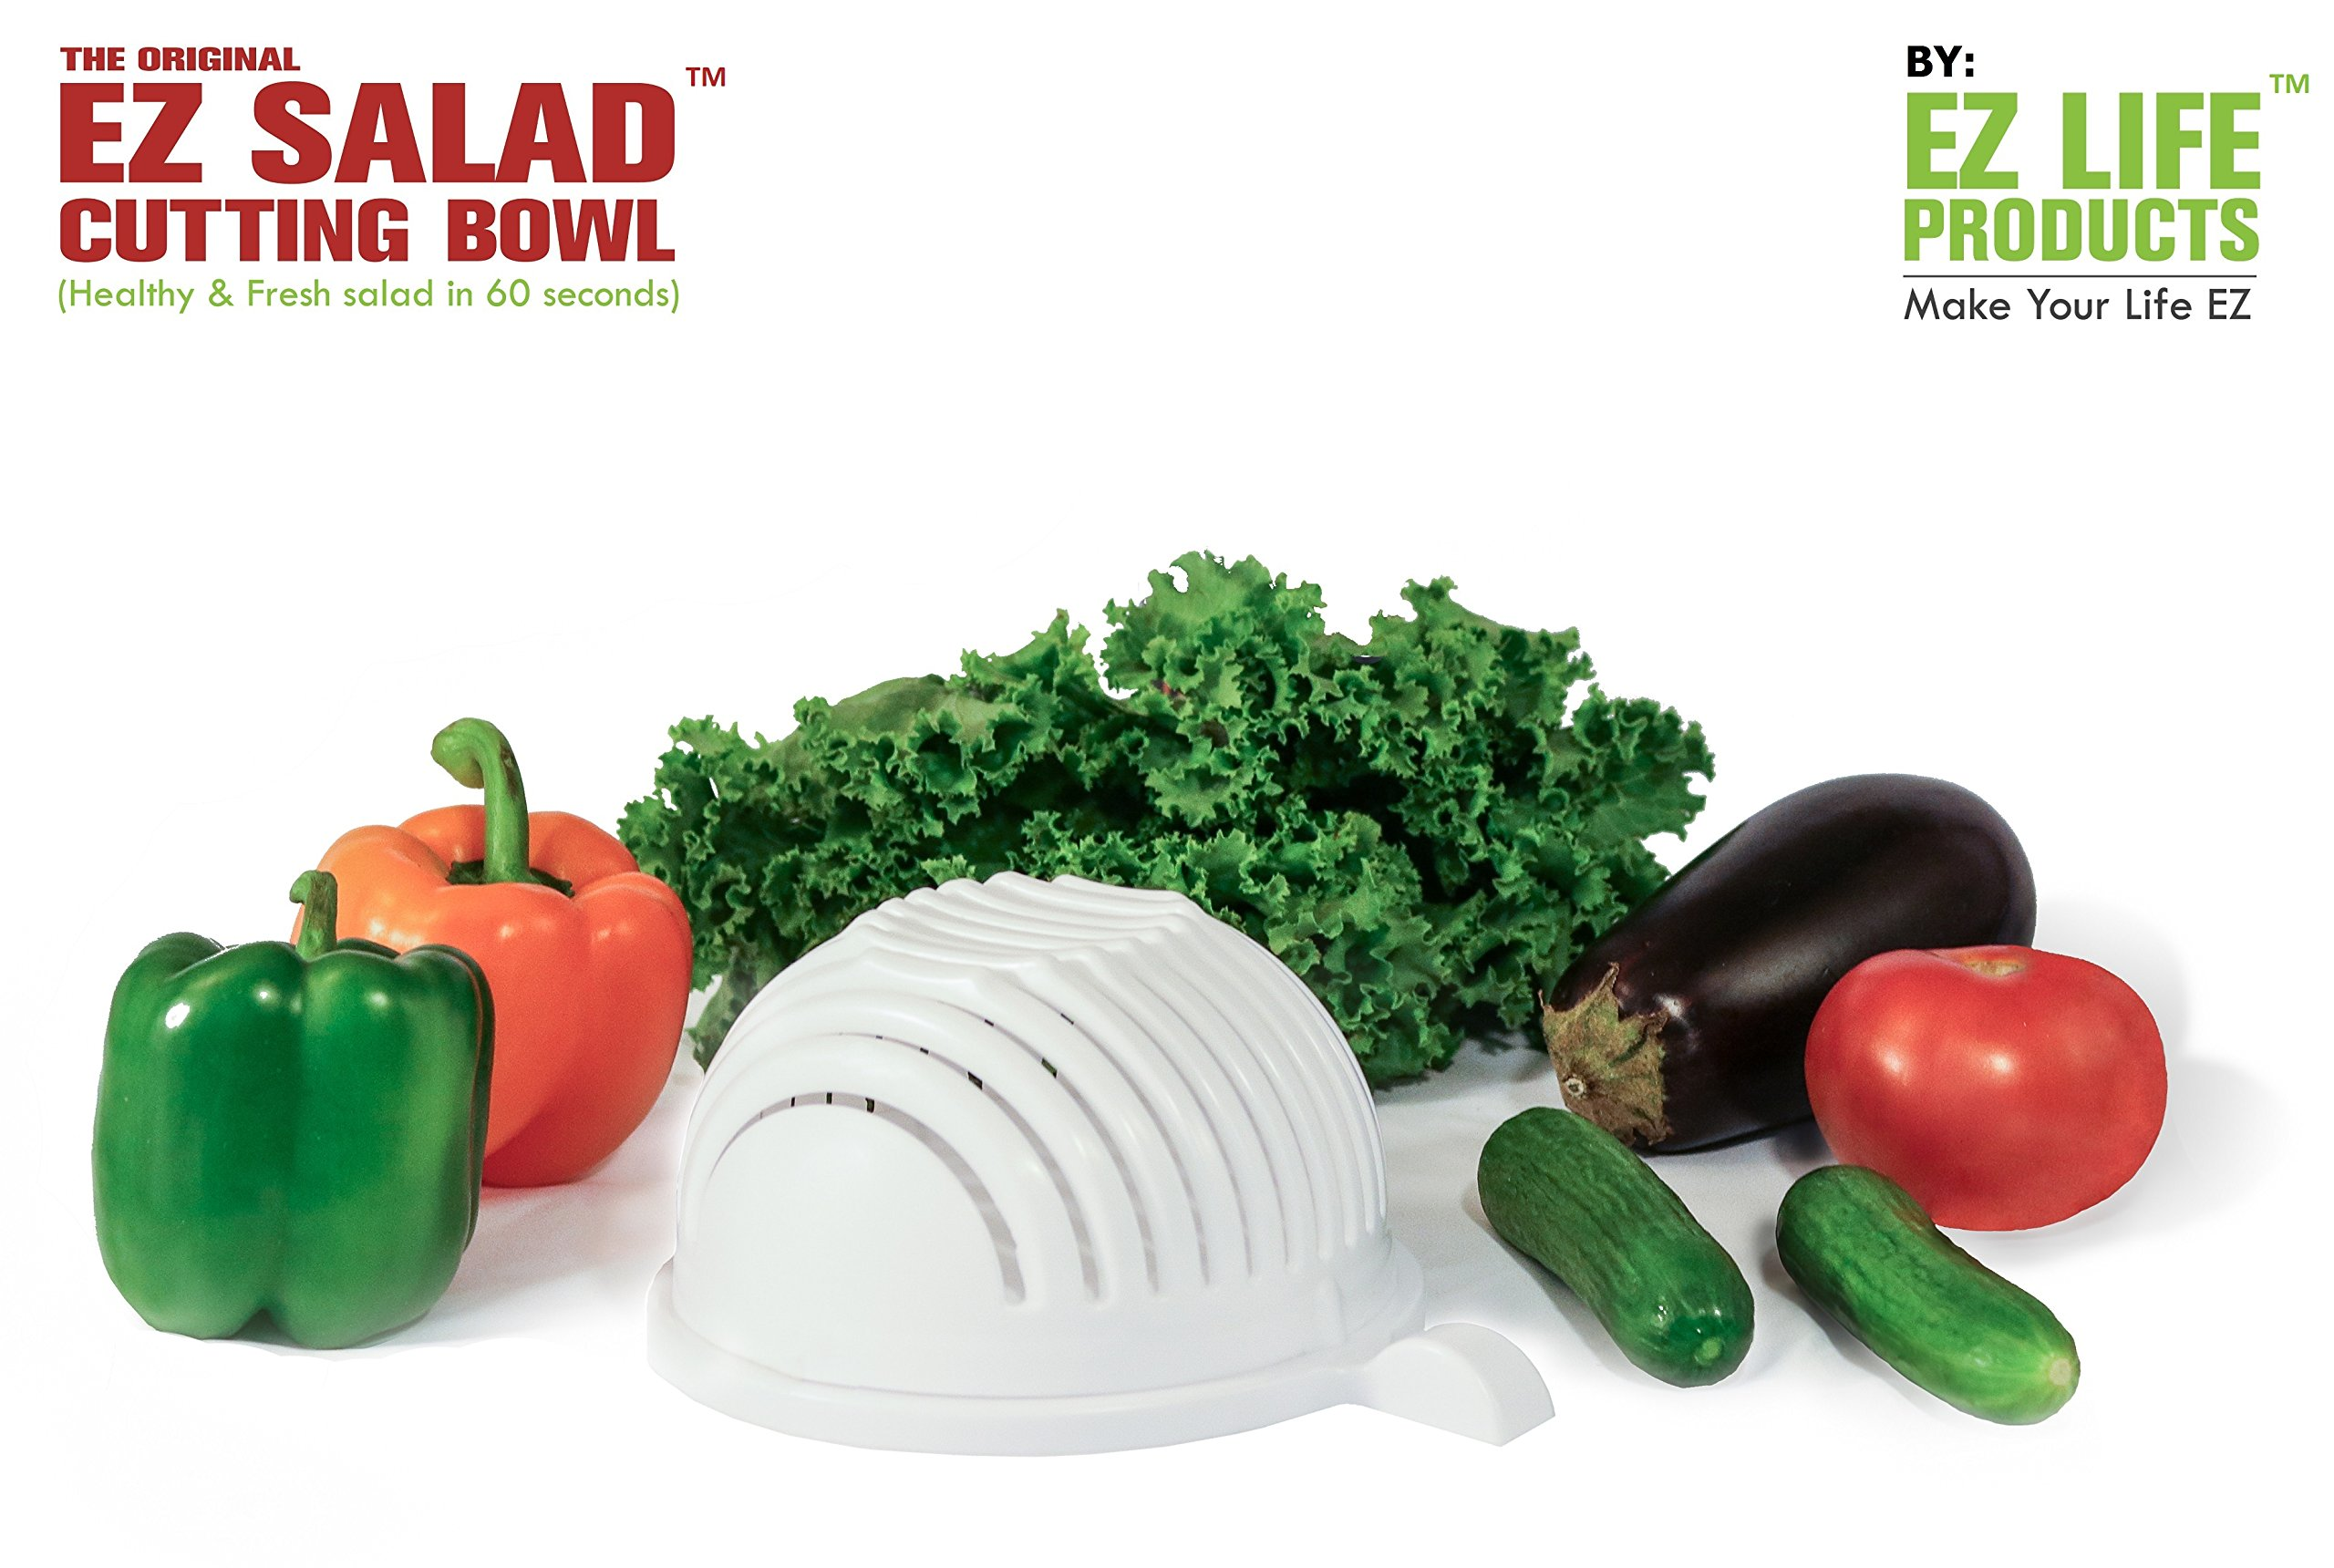 The Original EZ SALAD CUTTING BOWL | Fast cutting of vegetables, fruits, chicken & cheese | No cutting board needed | Use as a strainer | salad chopper & salad cutter bowl by EZ LIFE PRODUCTS ™ by EZ LIFE PRODUCTS (Image #1)